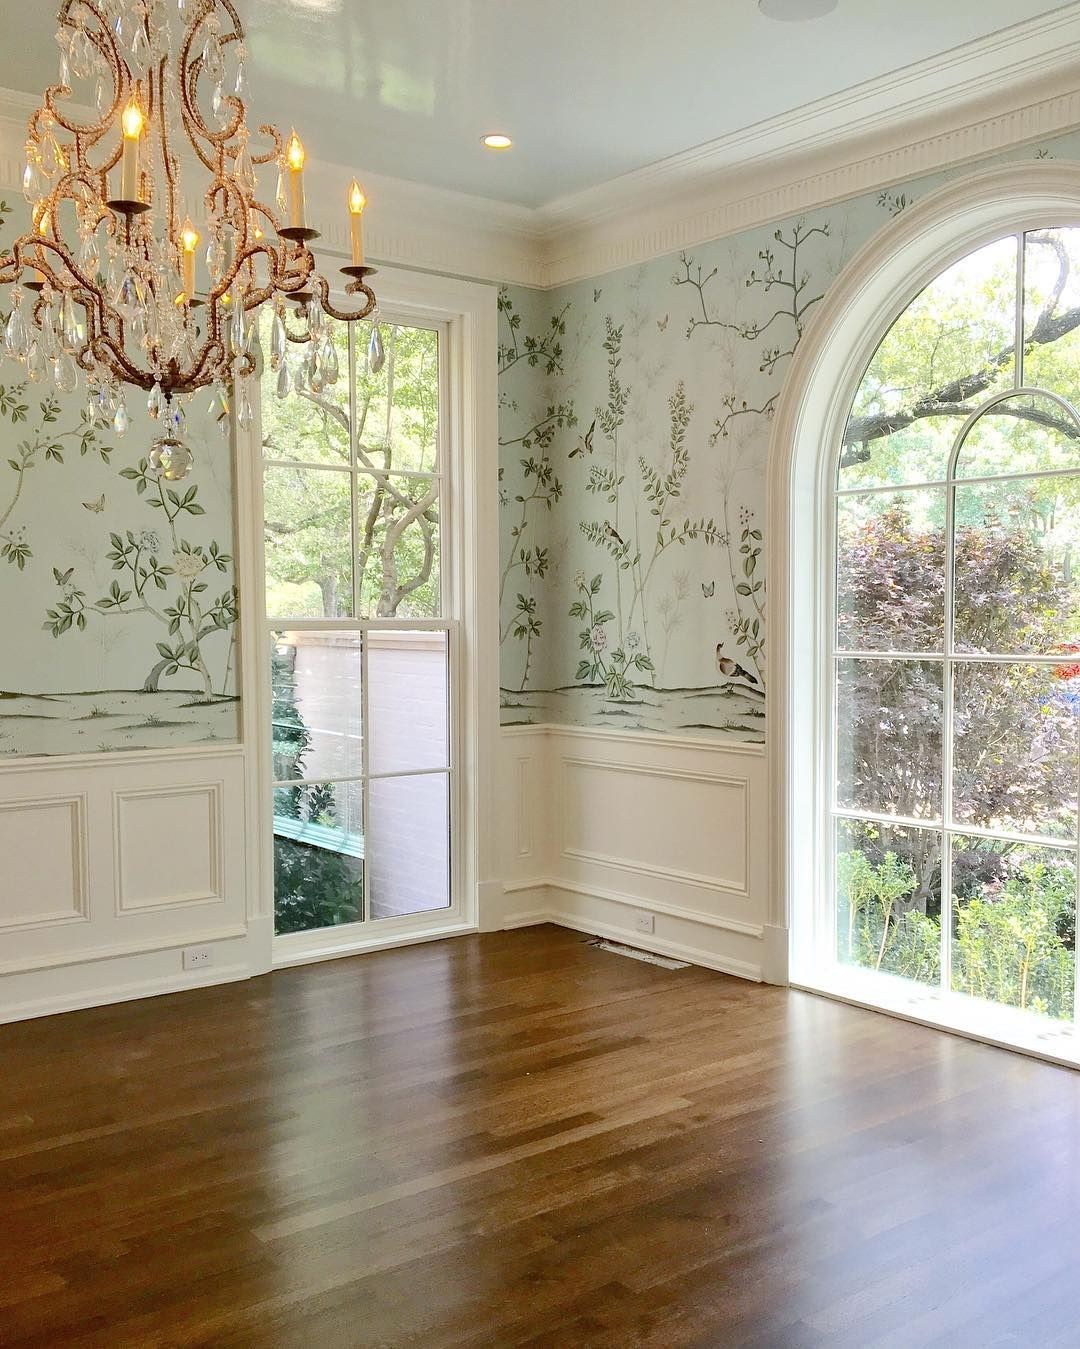 best images about wallpaper on pinterest polished nickel